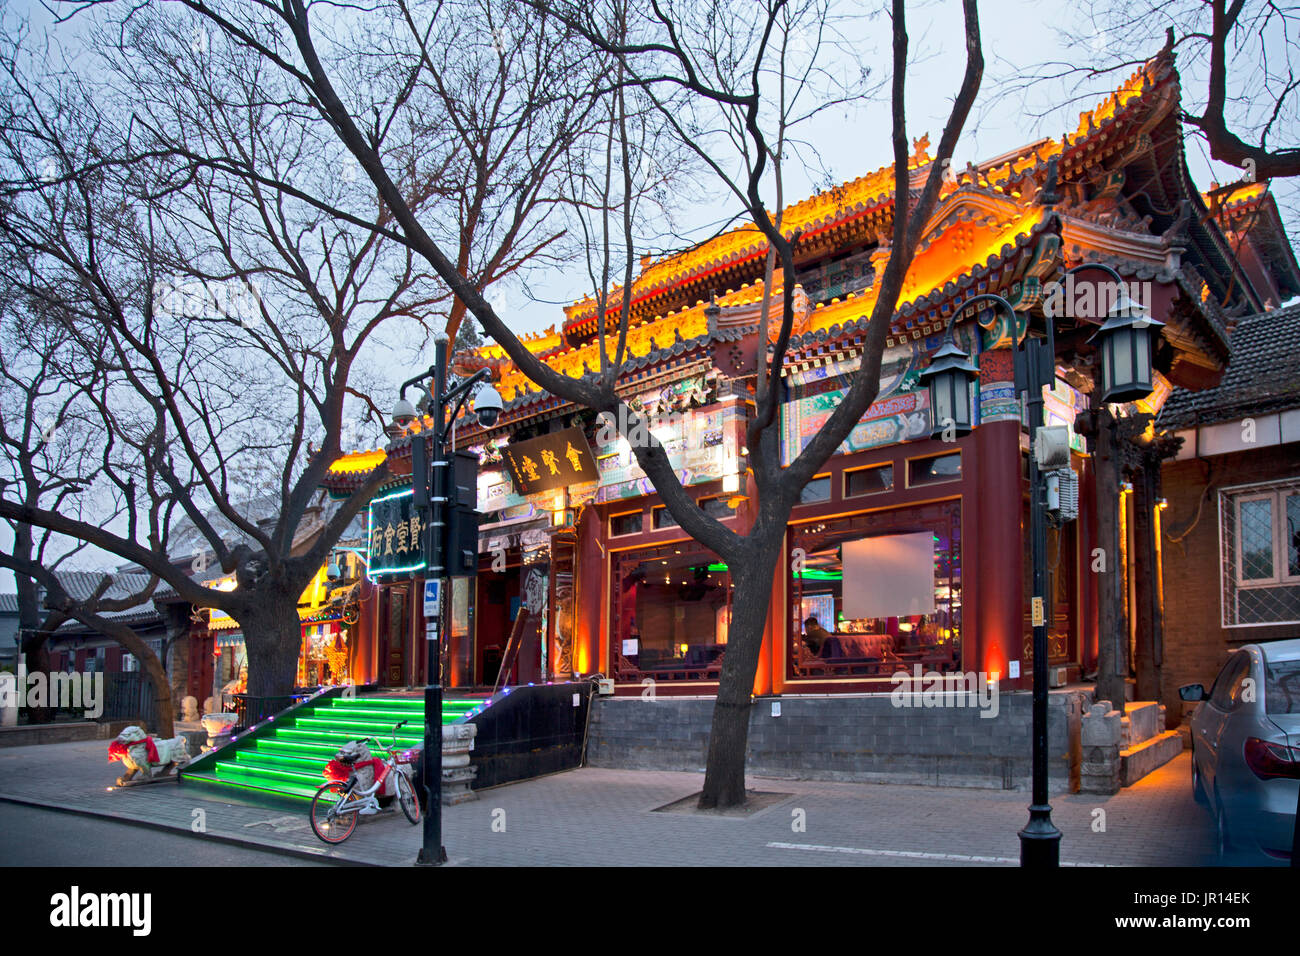 Resplendant in its early evening lights and neon, a restaurant awaits customers in the Shichahai (Houhai) District at Twilight, Beijing, China. - Stock Image